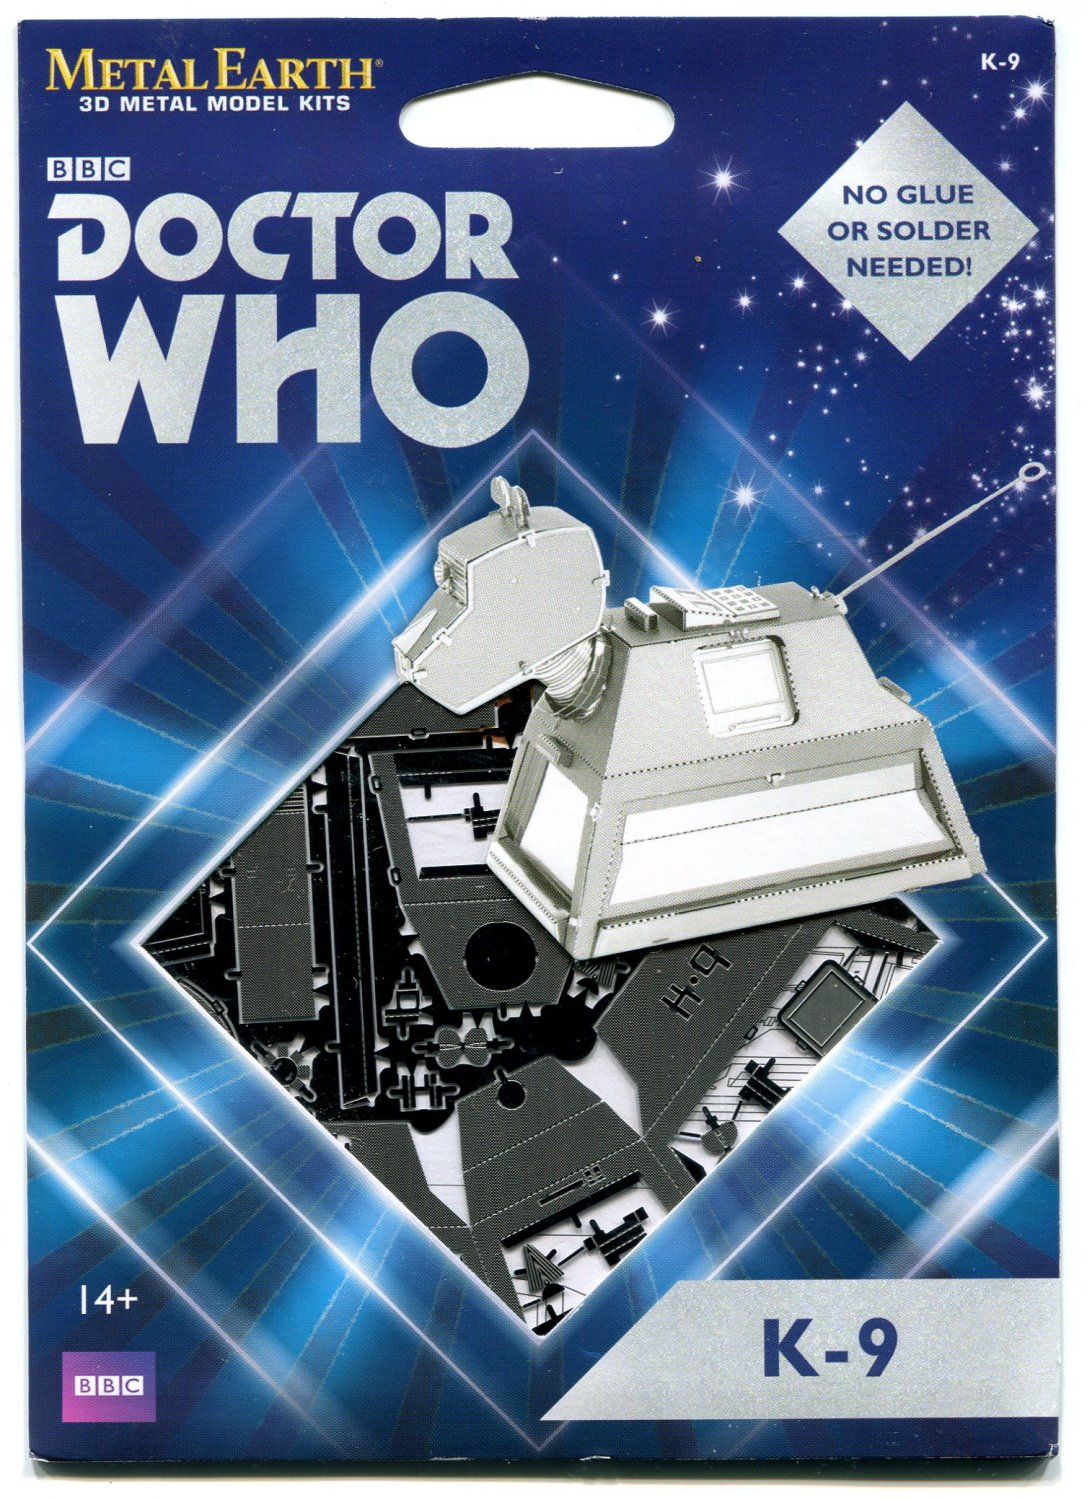 Metal Earth Dr Who K-9 3D Puzzle Micro Model